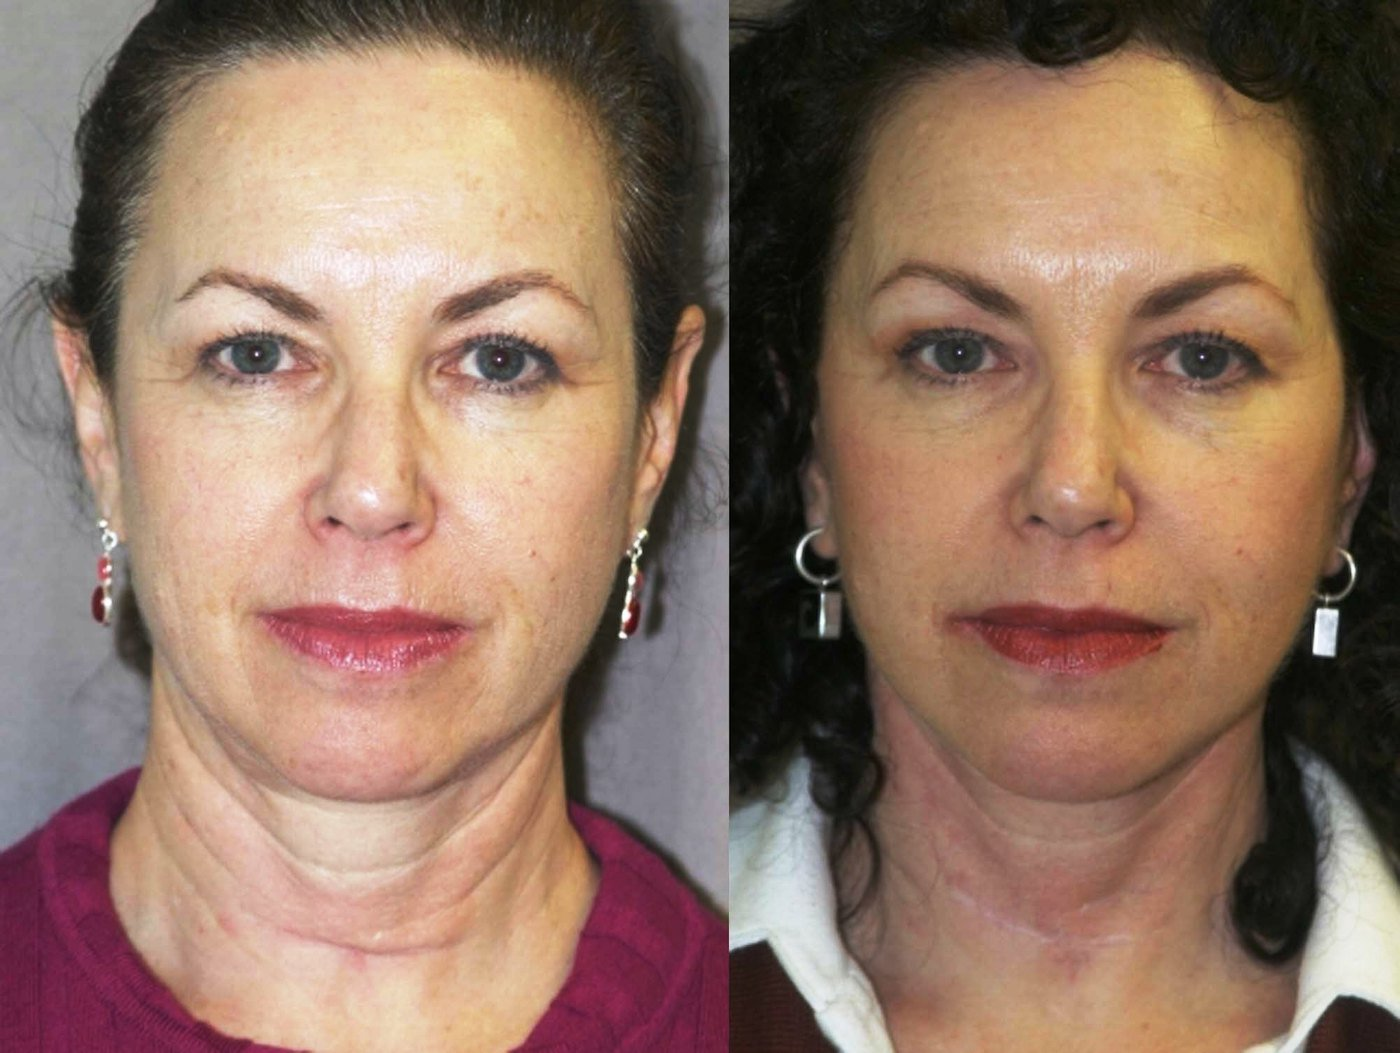 Short scar facelift with correction of thyroidectomy scar in lower neck, front view